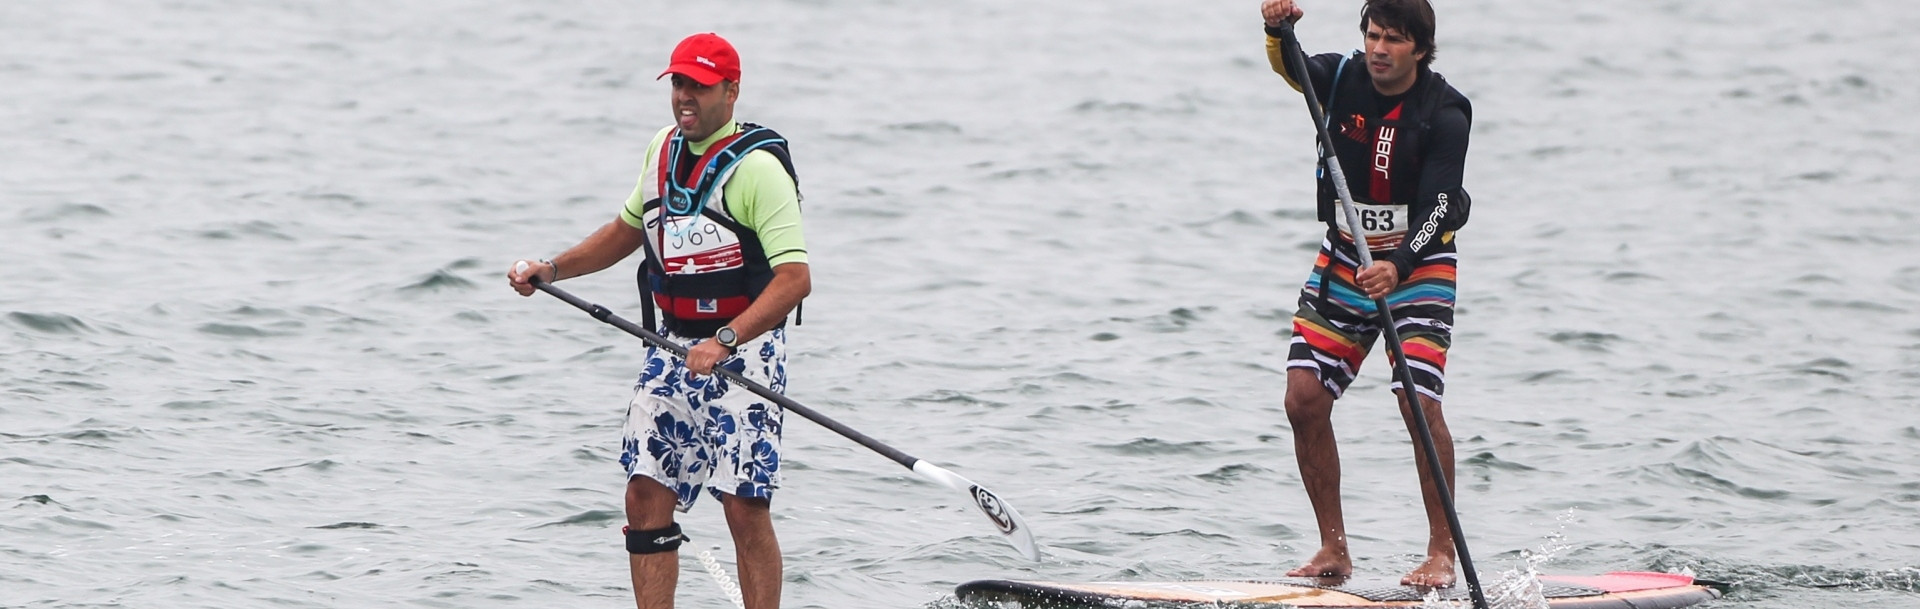 The ICF have called for a resolution to the stand-up paddle row ©ICF